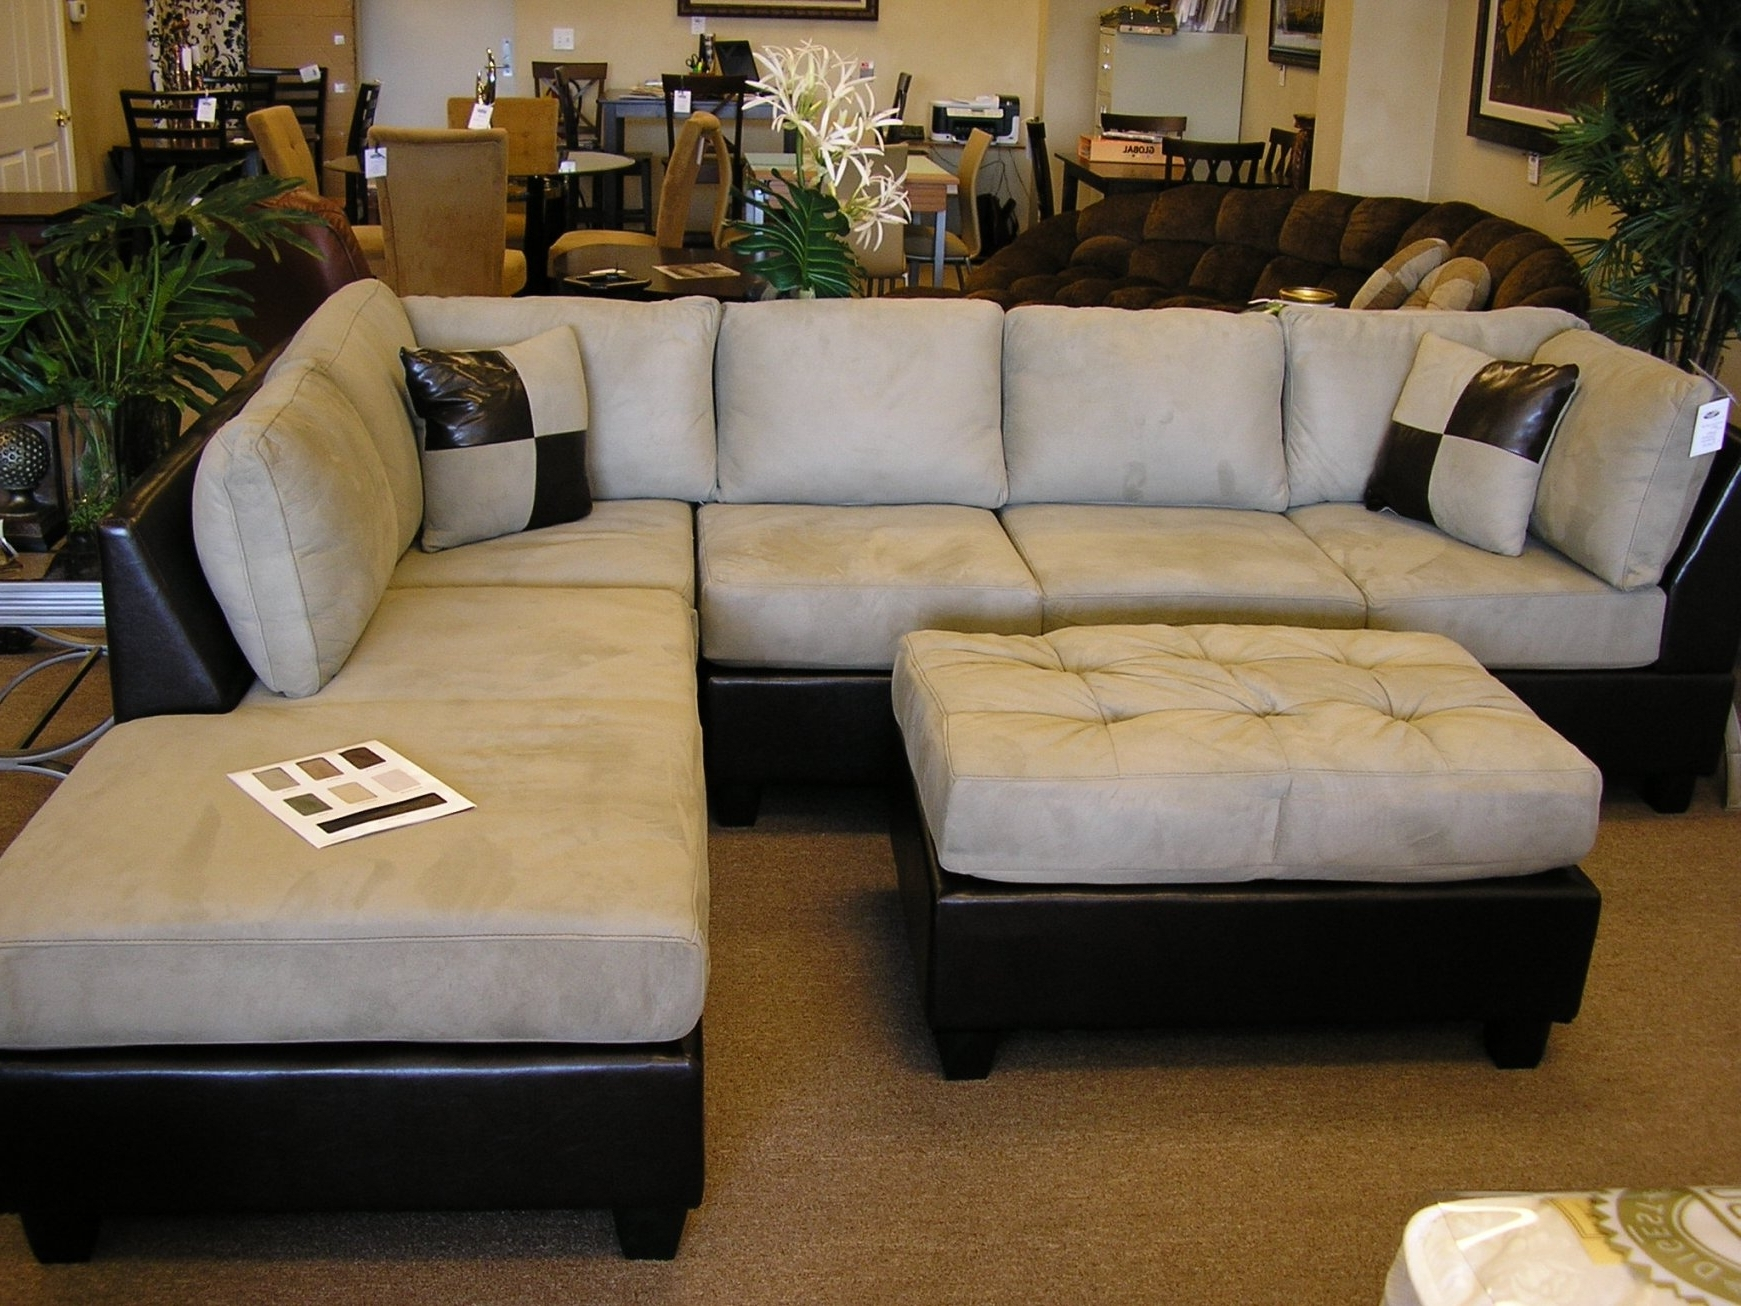 Chaise Lounge Sectionals Regarding 2017 Sectional Sofa With Chaise Lounge 32 On Sofas And Couches (View 5 of 15)